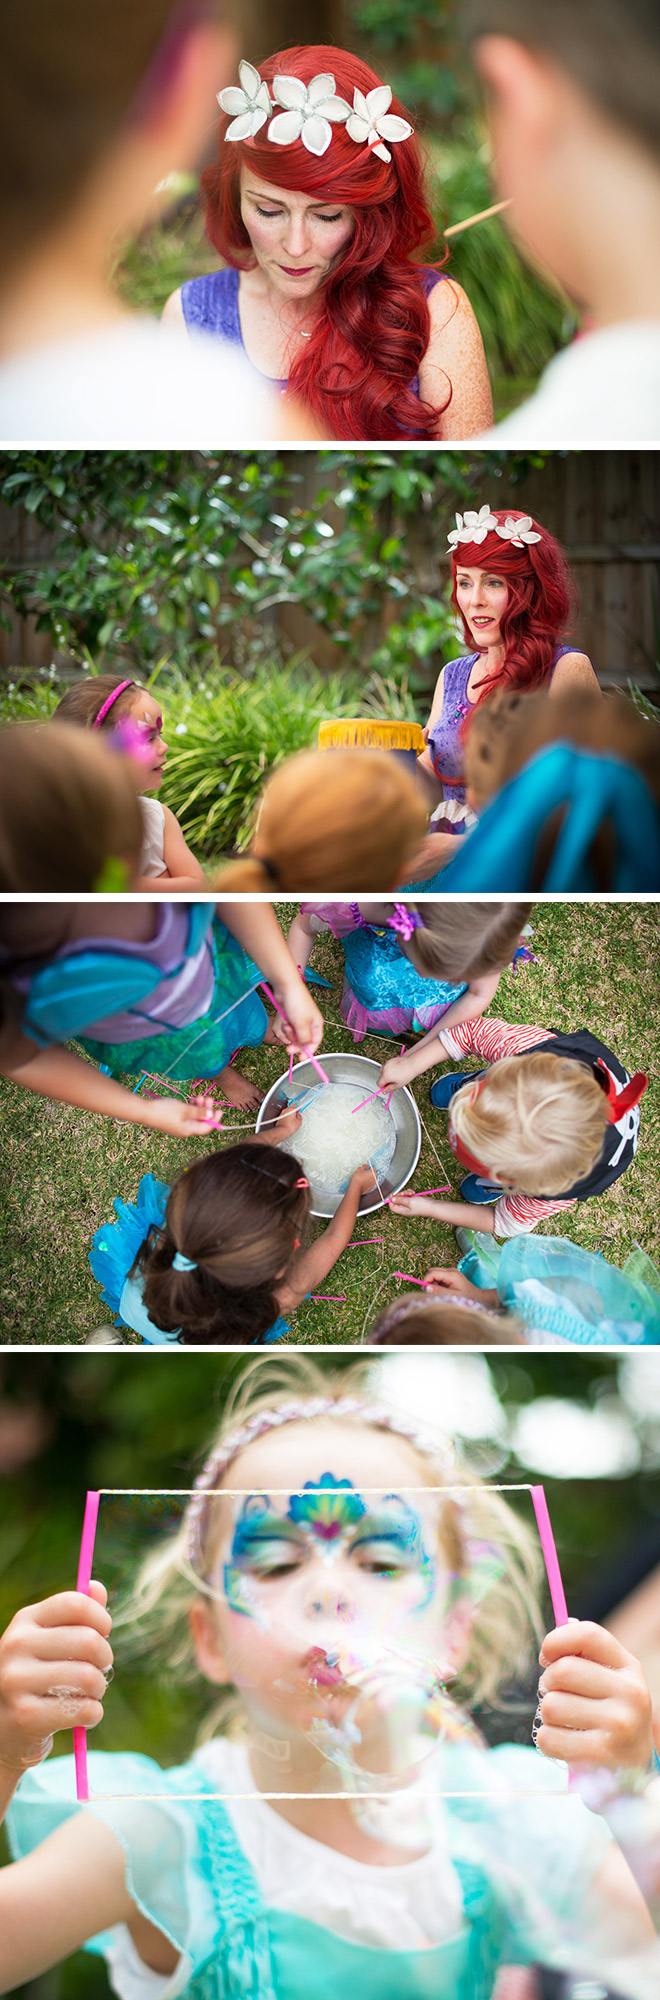 Mermaid Party Game Ideas: Blowing bubbles and underwater stories in the garden!